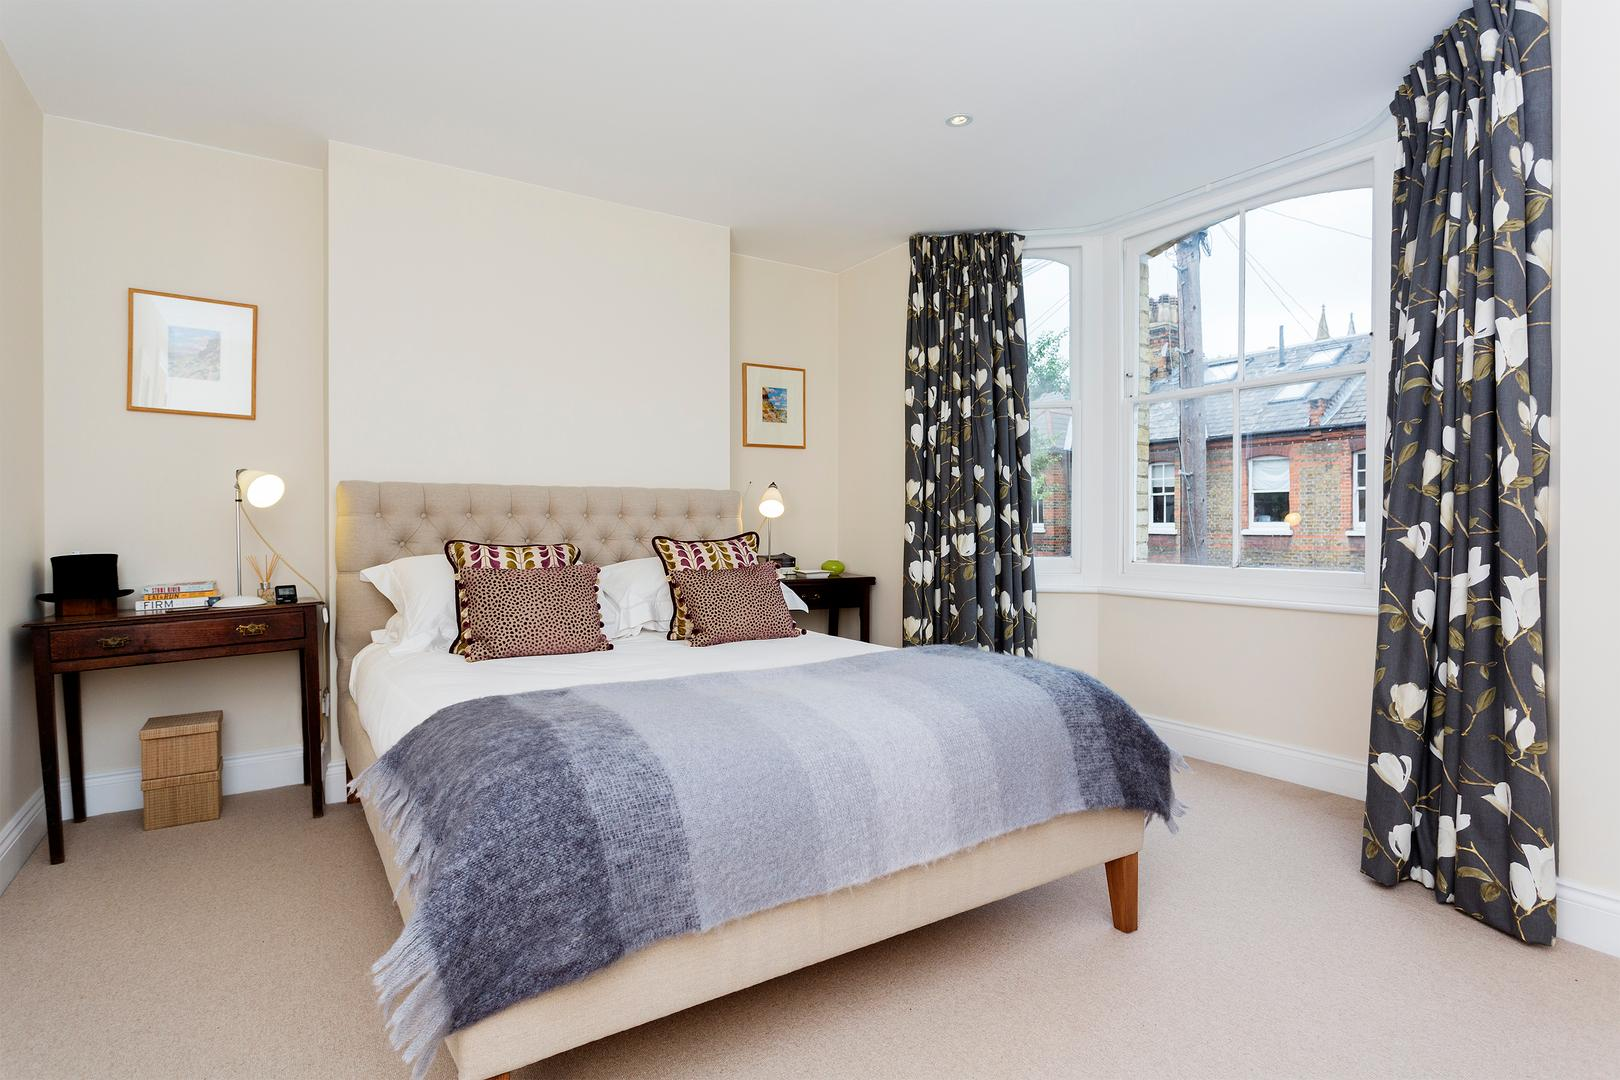 Property Image 1 - Bright, Inviting Battersea Home, Perfect for Families